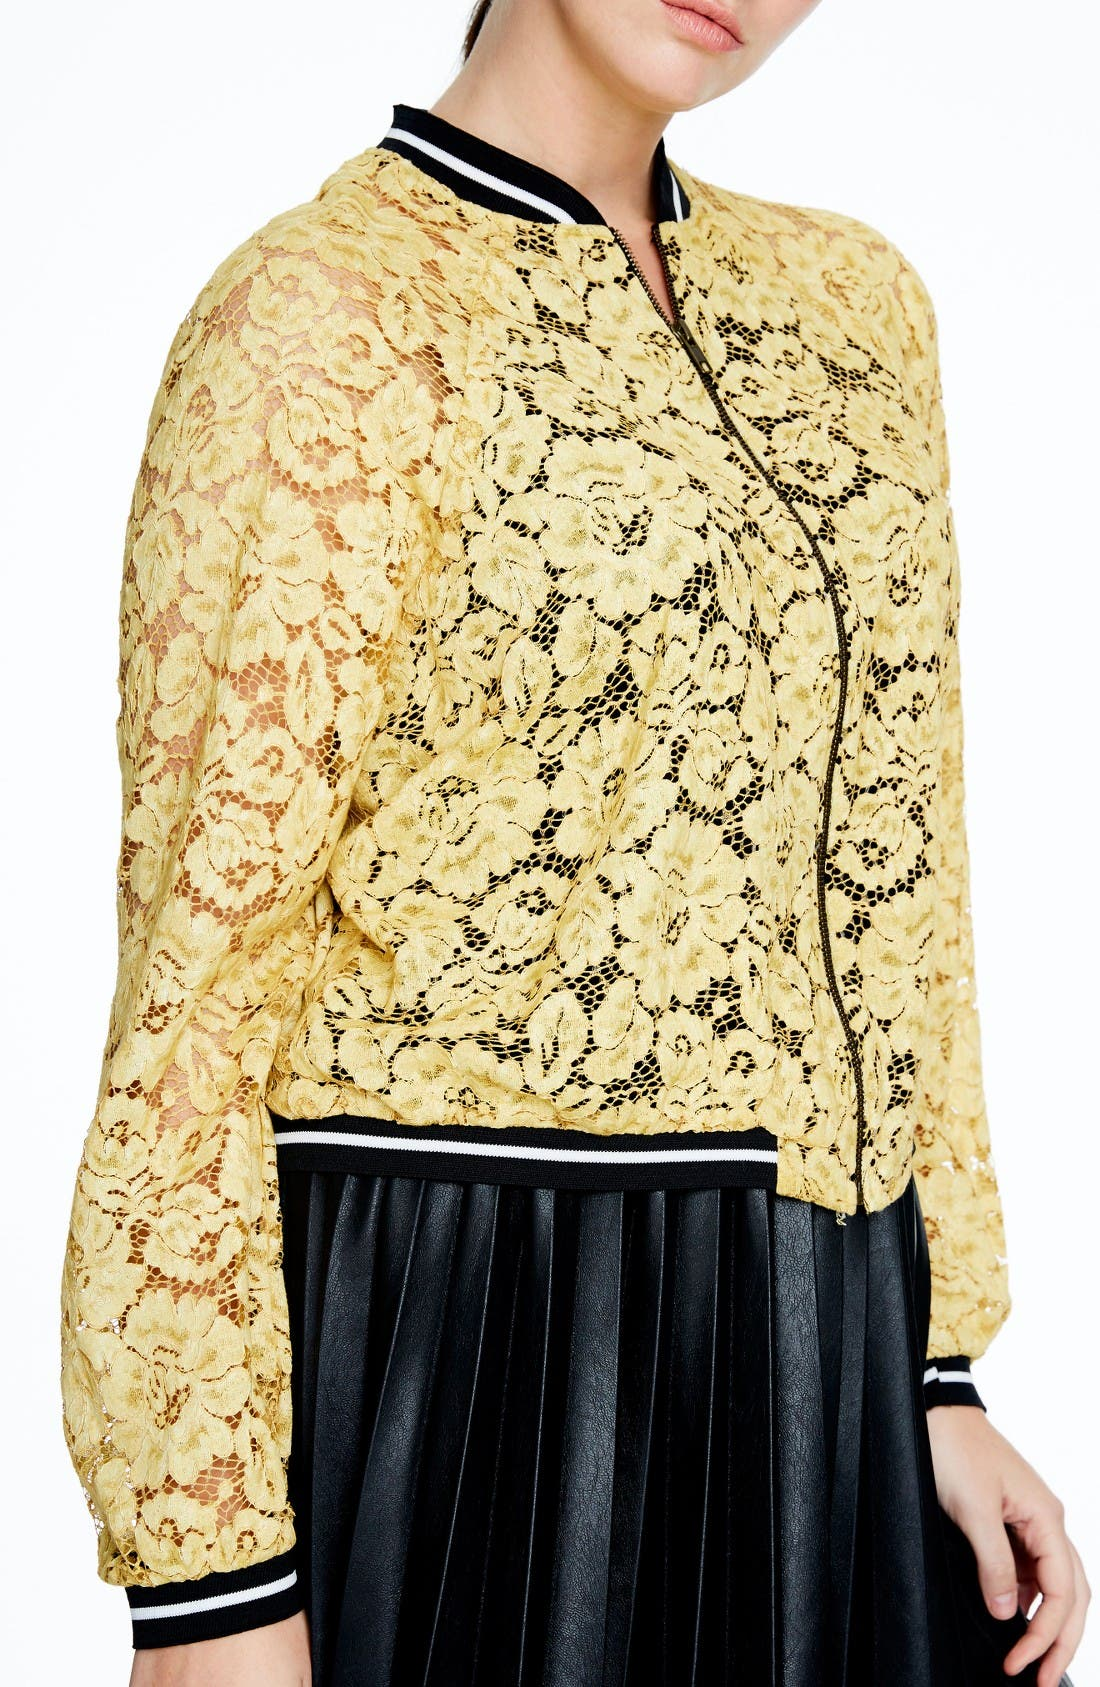 Catching The Sun! How? With The Sun-Yellow Plus Size Bomber Jacket